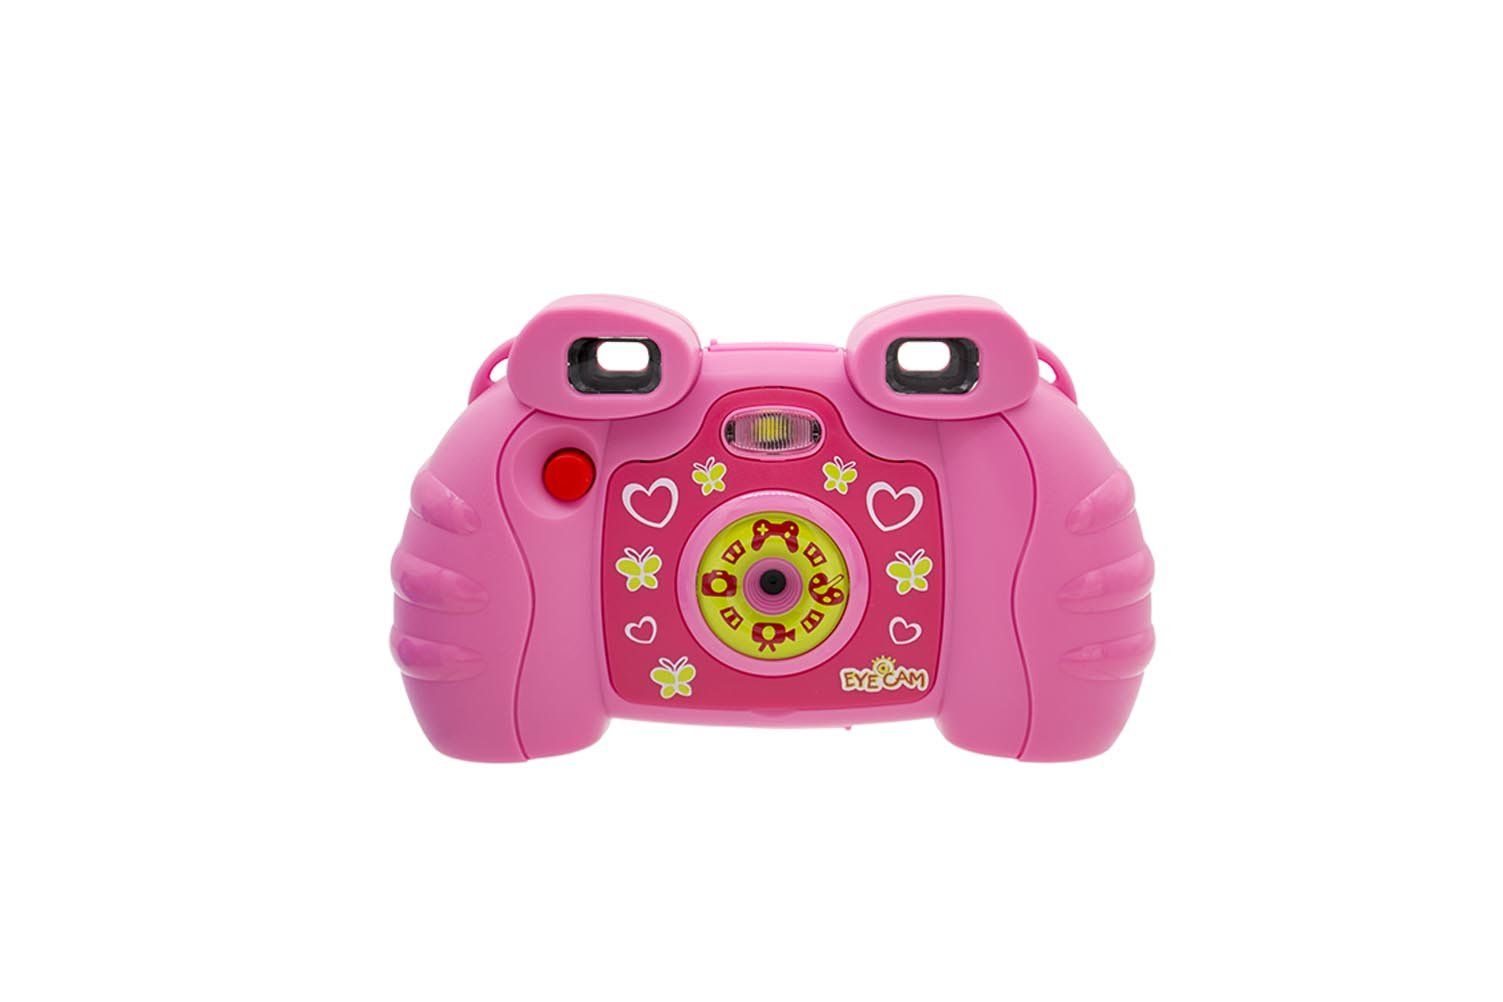 iCore Kids Digital Camera, Chidrens Tech Cameras Discovery Toys Girls , Toddler Video Camera 5-in-1 Funny Toy Games - pink